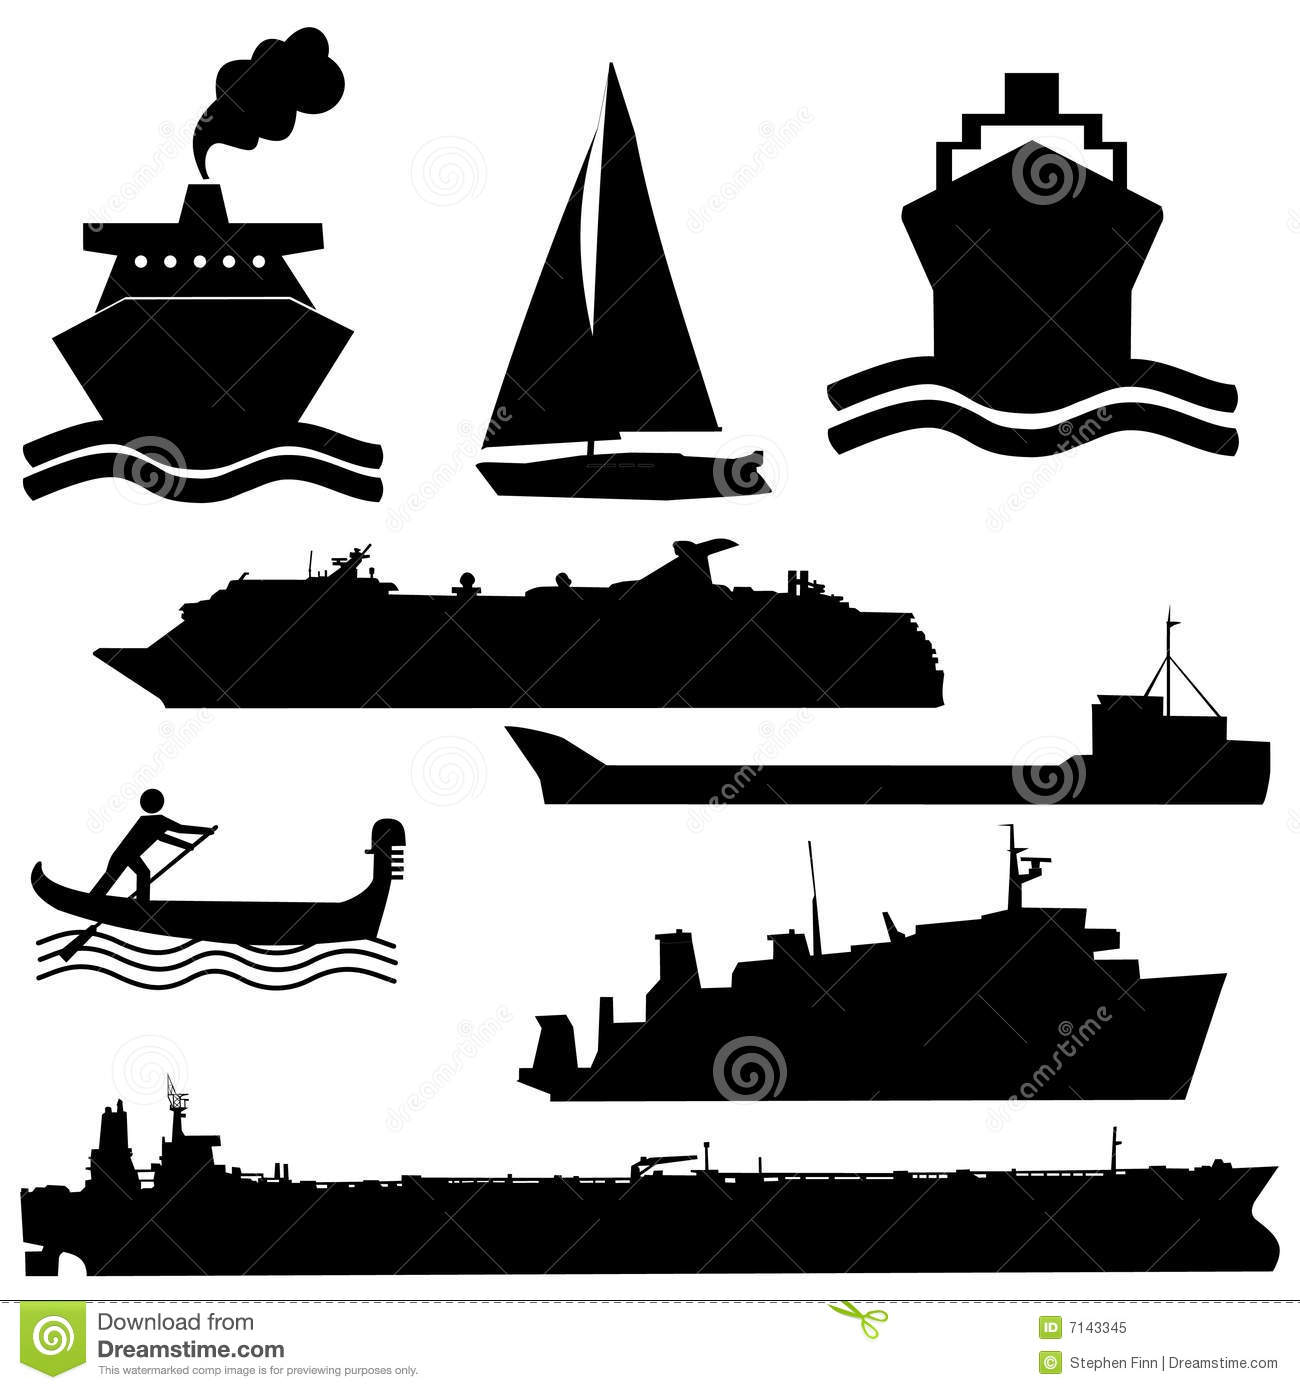 Assorted Boat Silhouettes Royalty Free Stock Photo - Image: 7143345